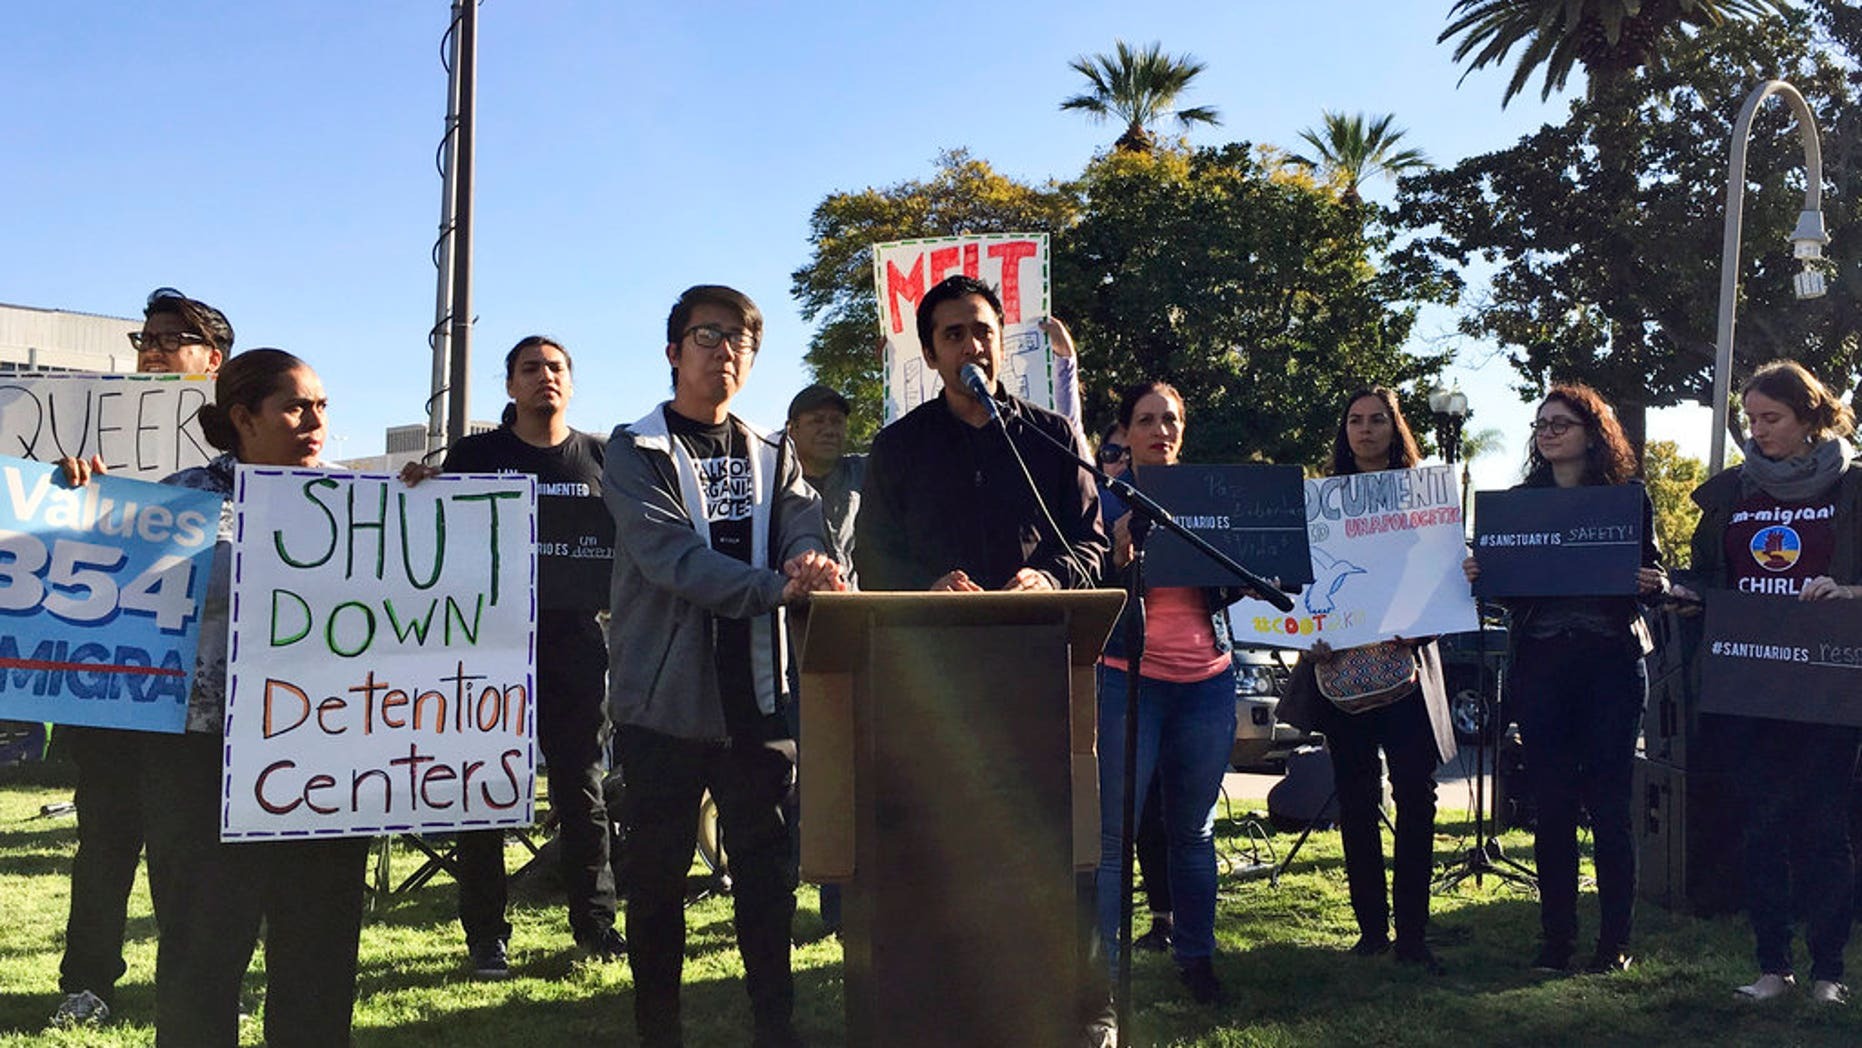 Salvador G. Sarmiento, center, speaks during an Immigrant advocates rally outside the Orange County Board of Supervisors' meeting room in Santa Ana, Calif., Tuesday, March 27, 2018, to protest a proposal to join a U.S. government lawsuit against California over the state's so-called sanctuary law. (AP Photo/Amy Taxin)